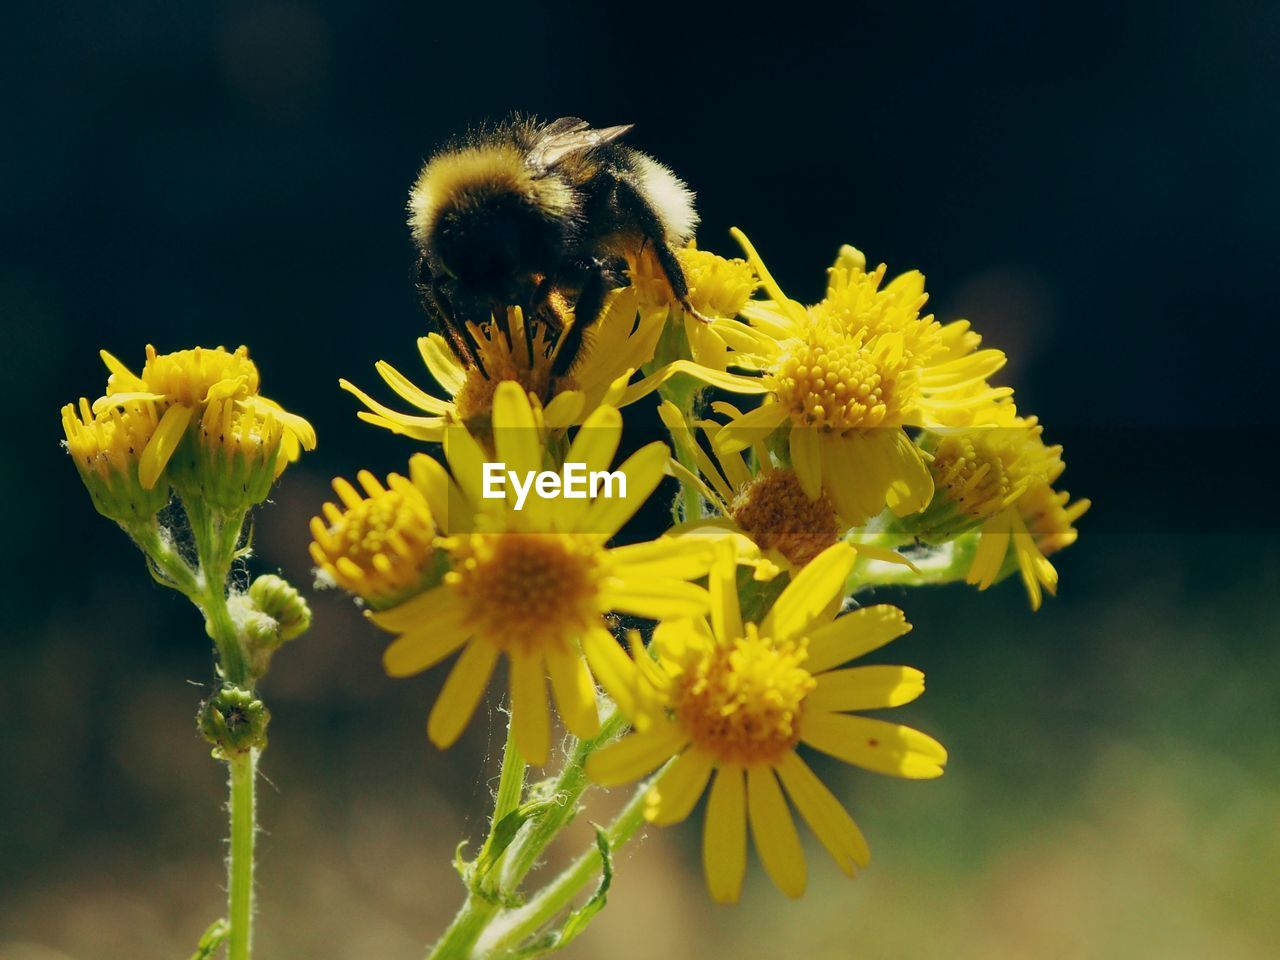 flowering plant, flower, fragility, vulnerability, animal themes, yellow, flower head, animal, animals in the wild, petal, beauty in nature, animal wildlife, freshness, plant, one animal, close-up, bee, invertebrate, insect, growth, pollination, no people, pollen, bumblebee